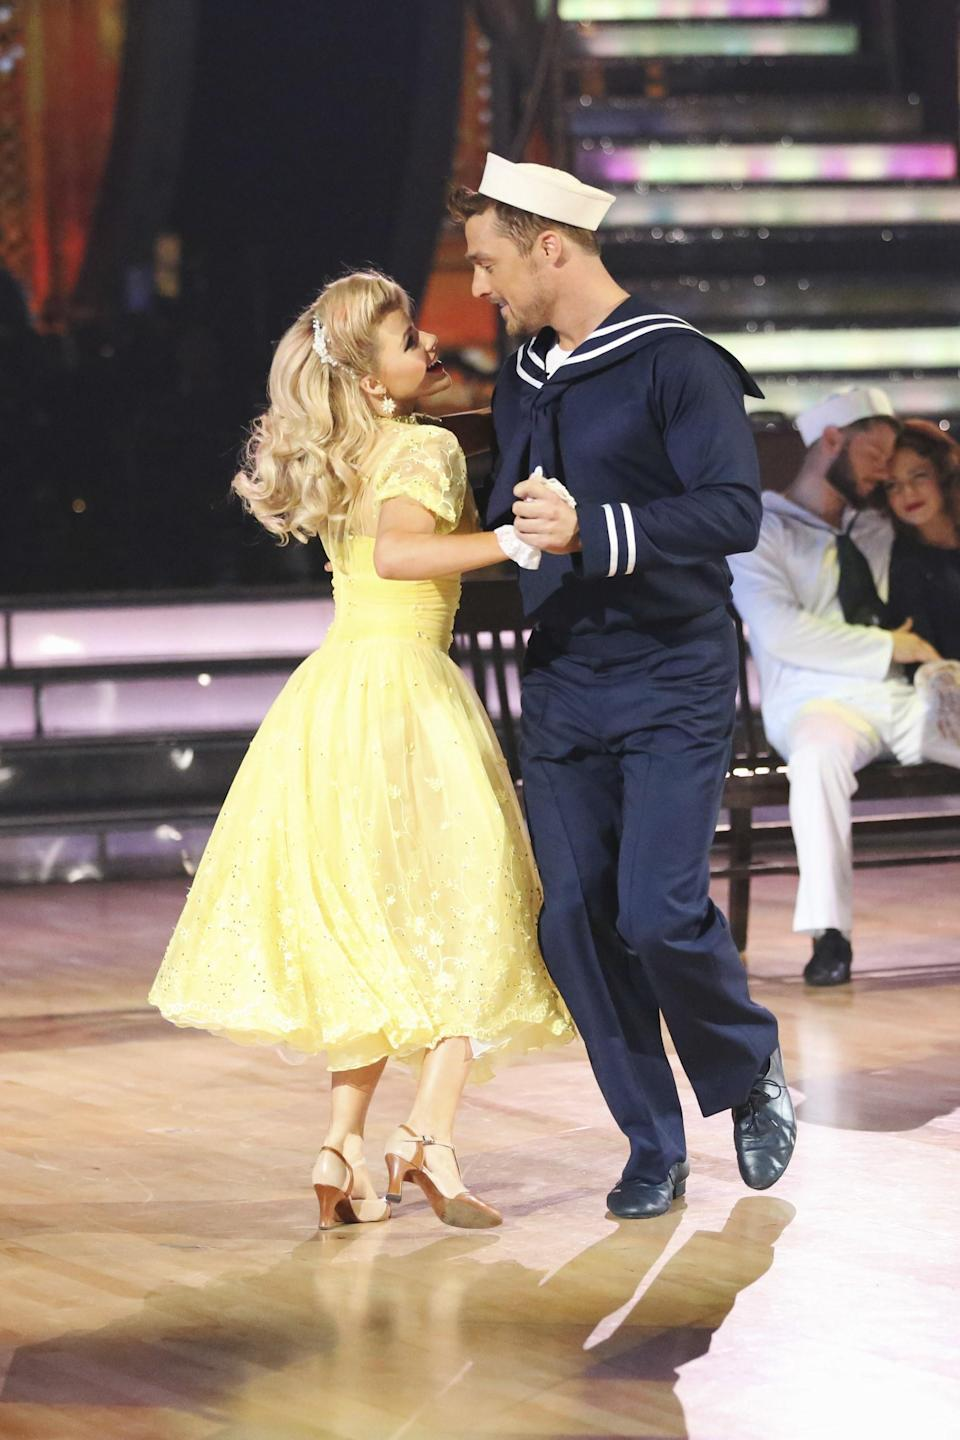 Following in Lowe's shoes, Soules went straight to the dance floor after his stint as the Bachelor. The farmer competed on season 20 in 2015 and was paired with pro dancer Witney Carson, who looked eerily similar to his then fiancée Whitney Bischoff. The dancing duo—who made it to fifth place—were hit with dating rumors throughout his entire time on the show. Just a few short weeks after getting eliminated in week eight, Lowe and Bischoff called off their engagement.